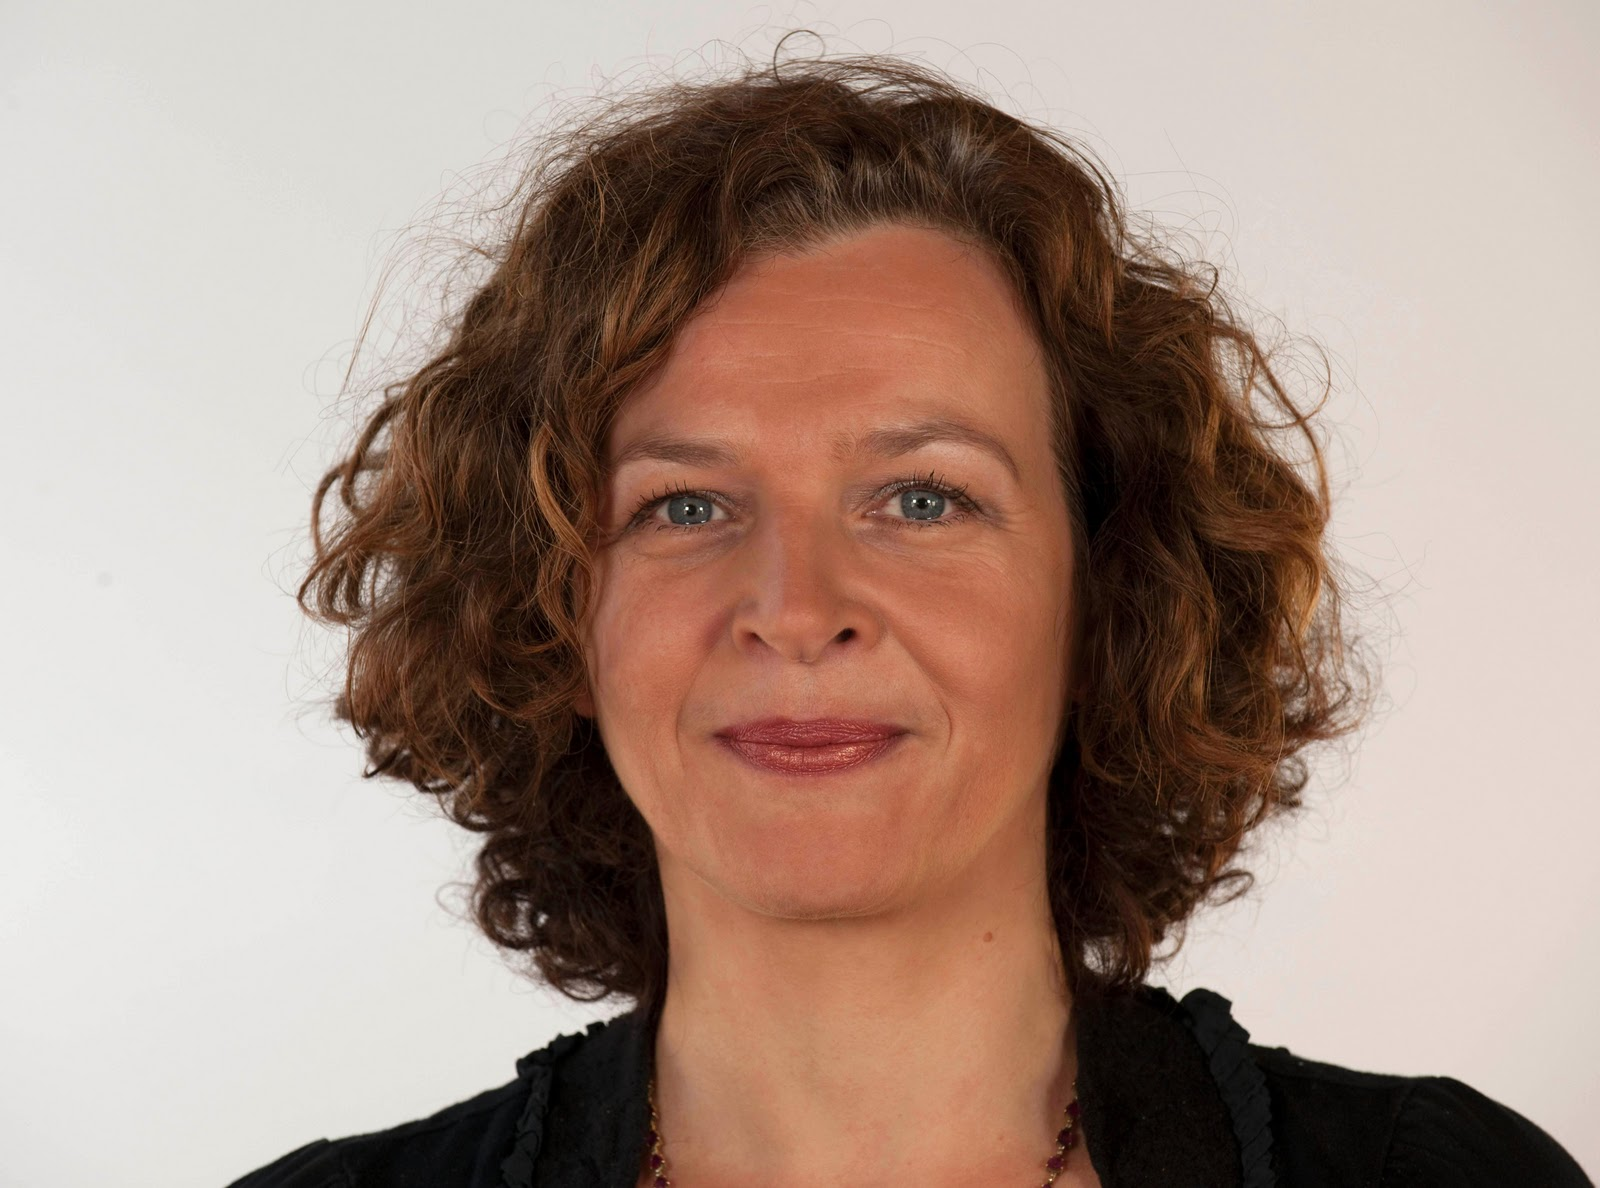 Edith Schippers Dutch dentists to increase prices Minister Edith